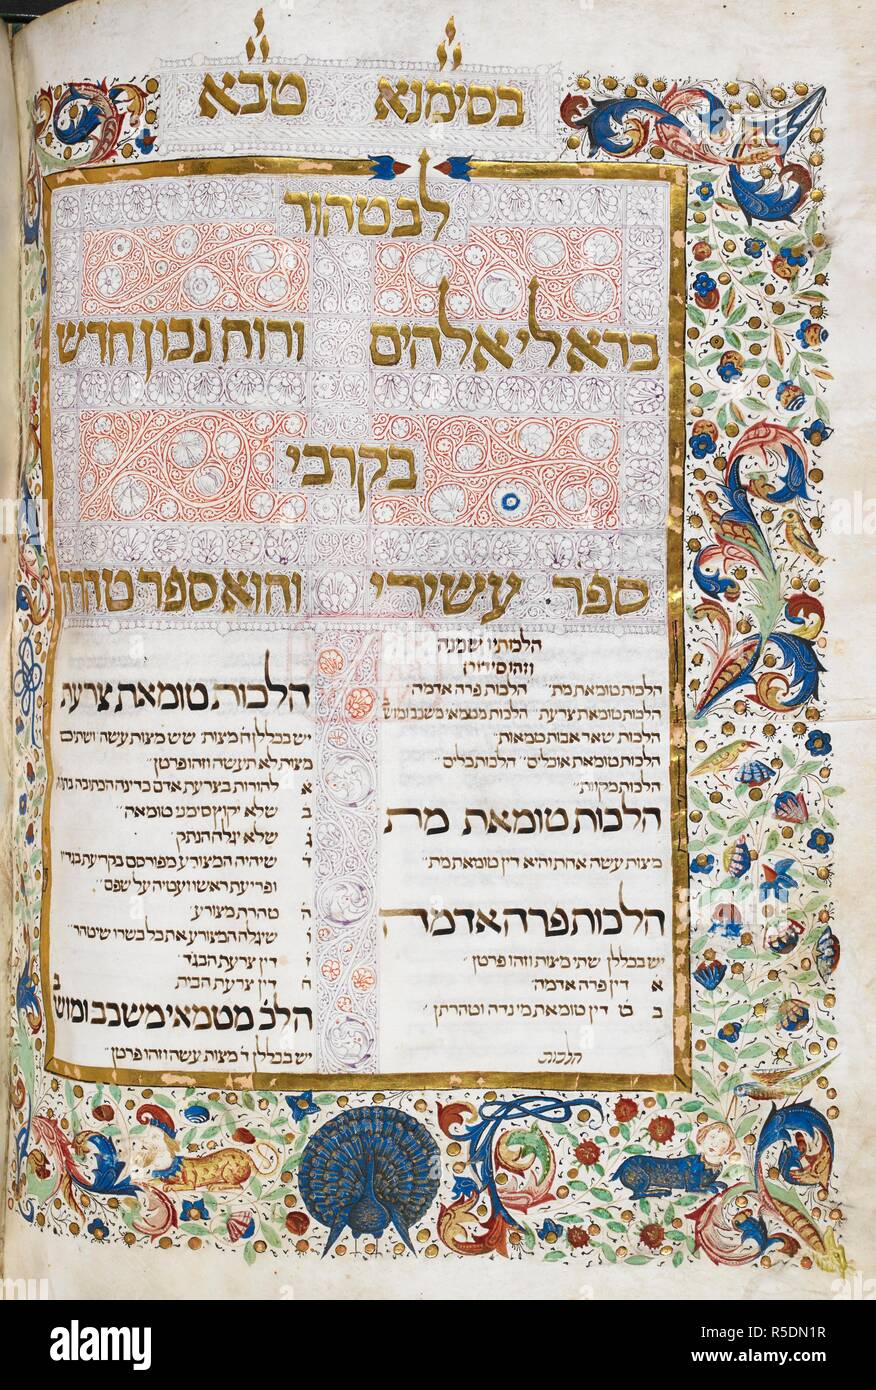 Decorated initial-word panel with gold and penwork, at the beginning of the tenth book, the Book of Ritual Purity (Sefer Tohorah) with a full foliate border with two hybrids and a peacock in the lower margin. Lisbon Mishneh Torah, volume 2. Portugal (Lisbon); 1471-1472. Source: Harley 5699, f.189v. Language: Hebrew. - Stock Image